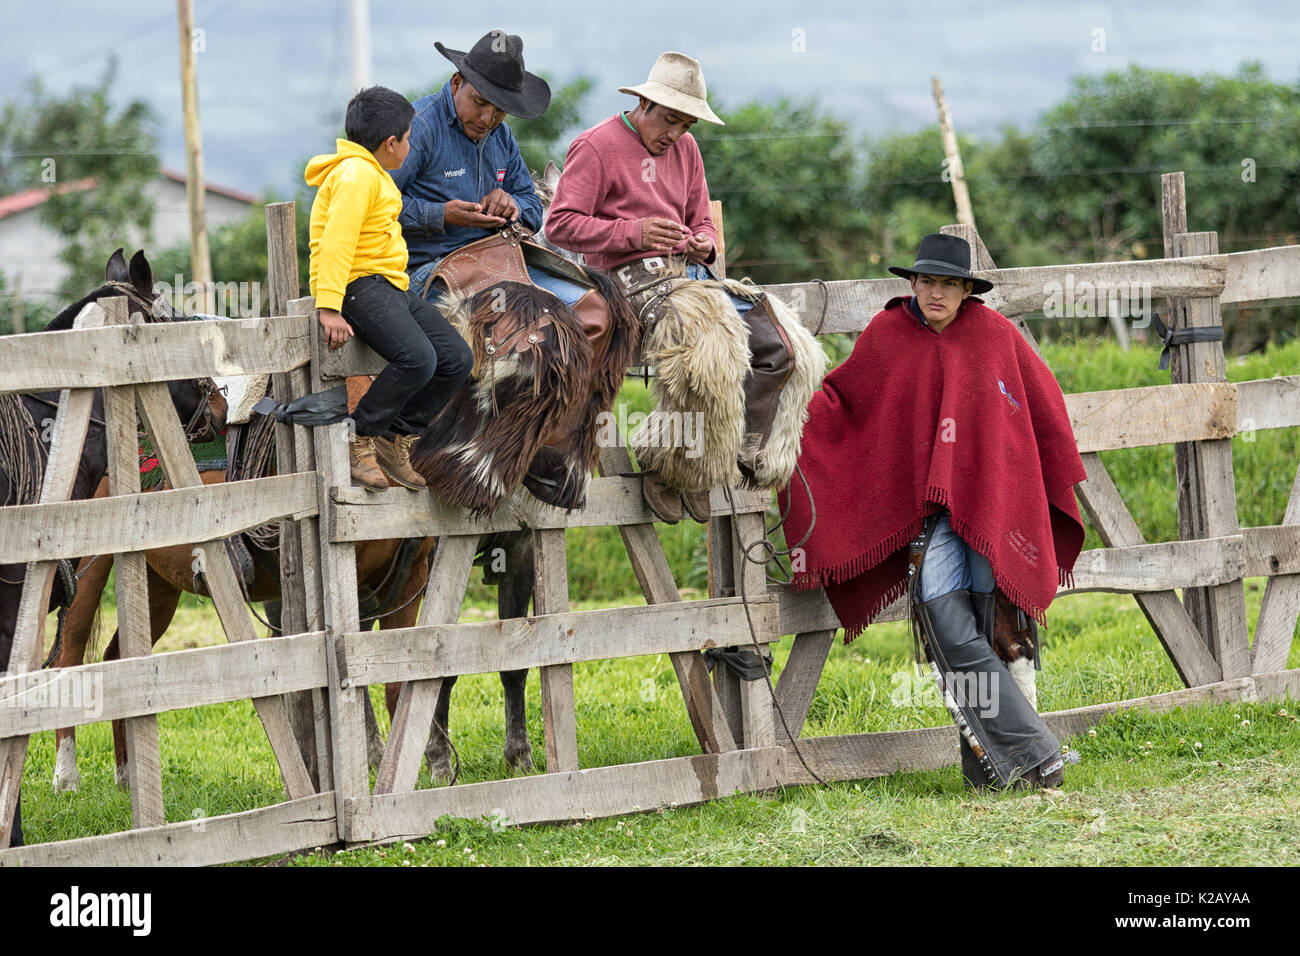 June 3, 2017 Machachi, Ecuador: cowboys from the Andes sitting on the fence in the morning in the high altitude town - Stock Image